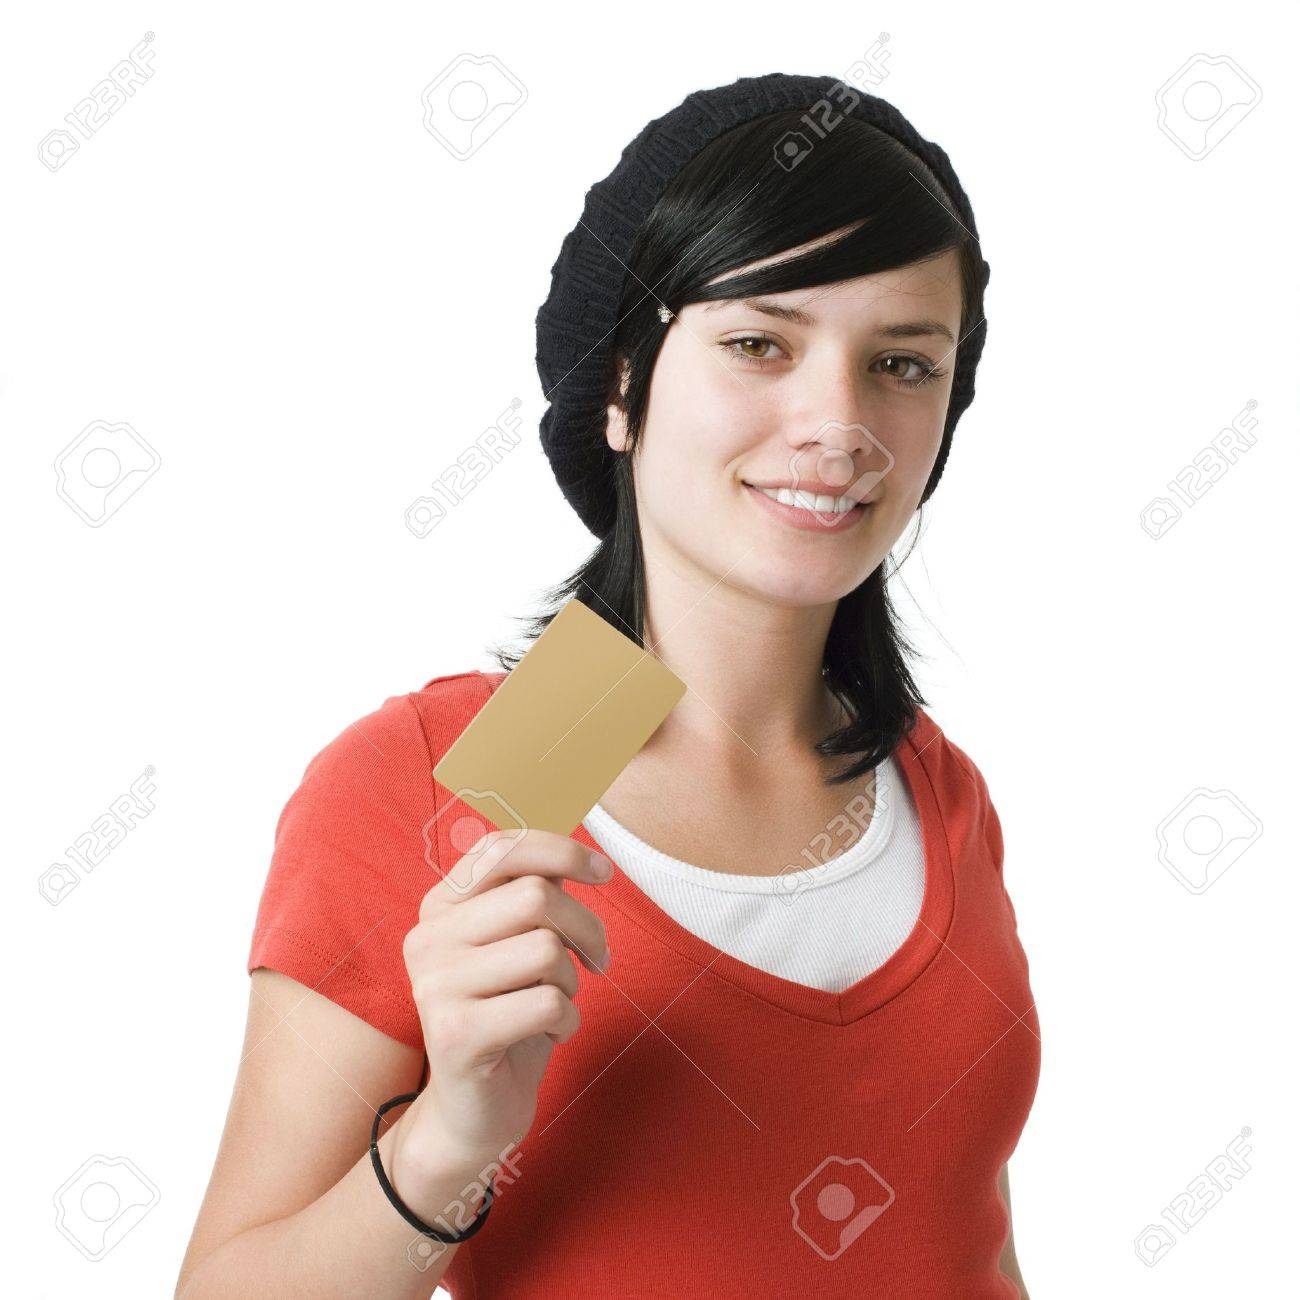 Girl with credit card and smiles Stock Photo - 3829085